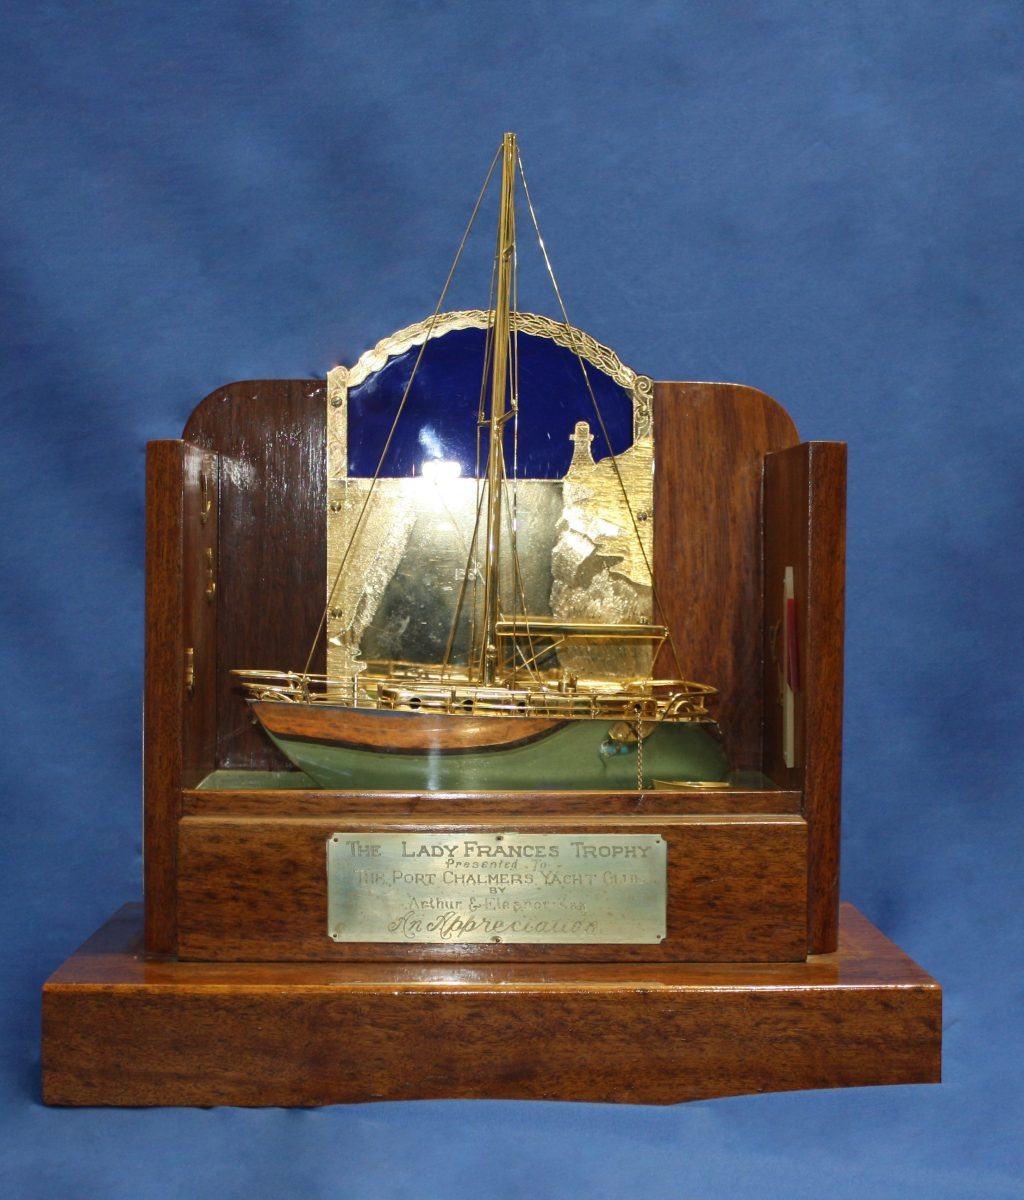 Lady Frances Trophy